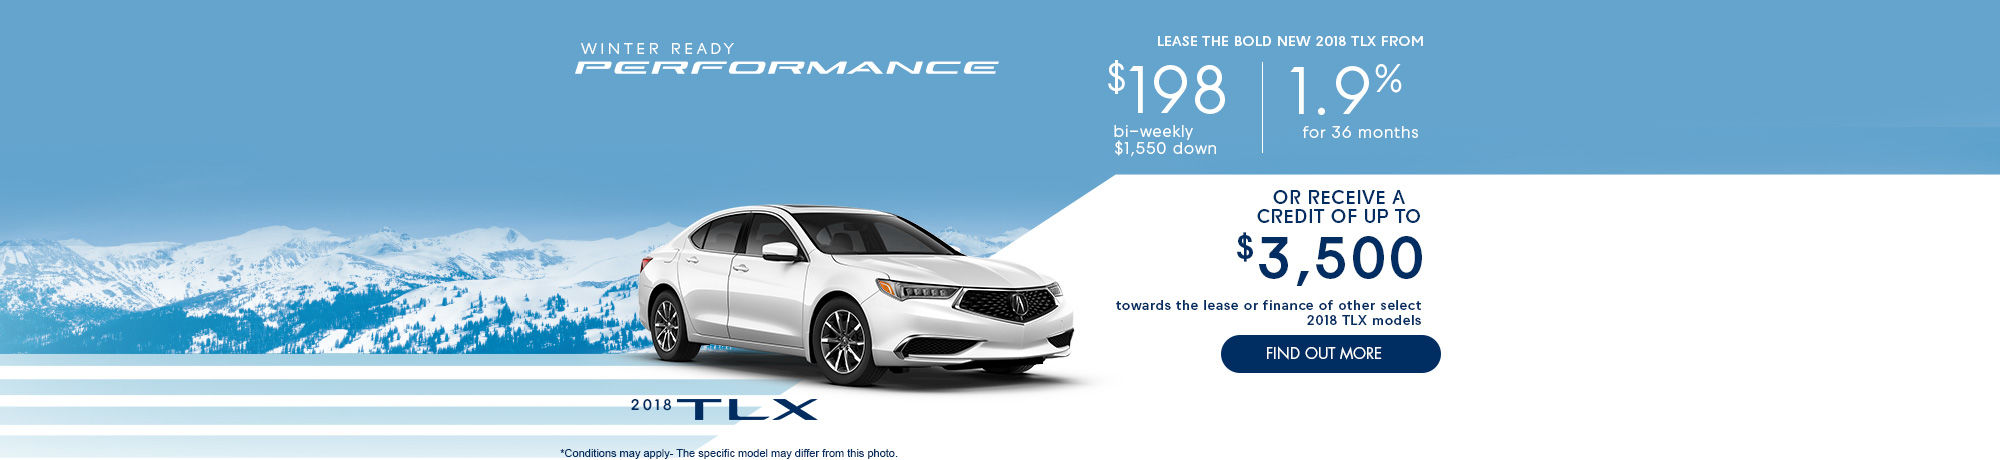 Winter ready performance - TLX